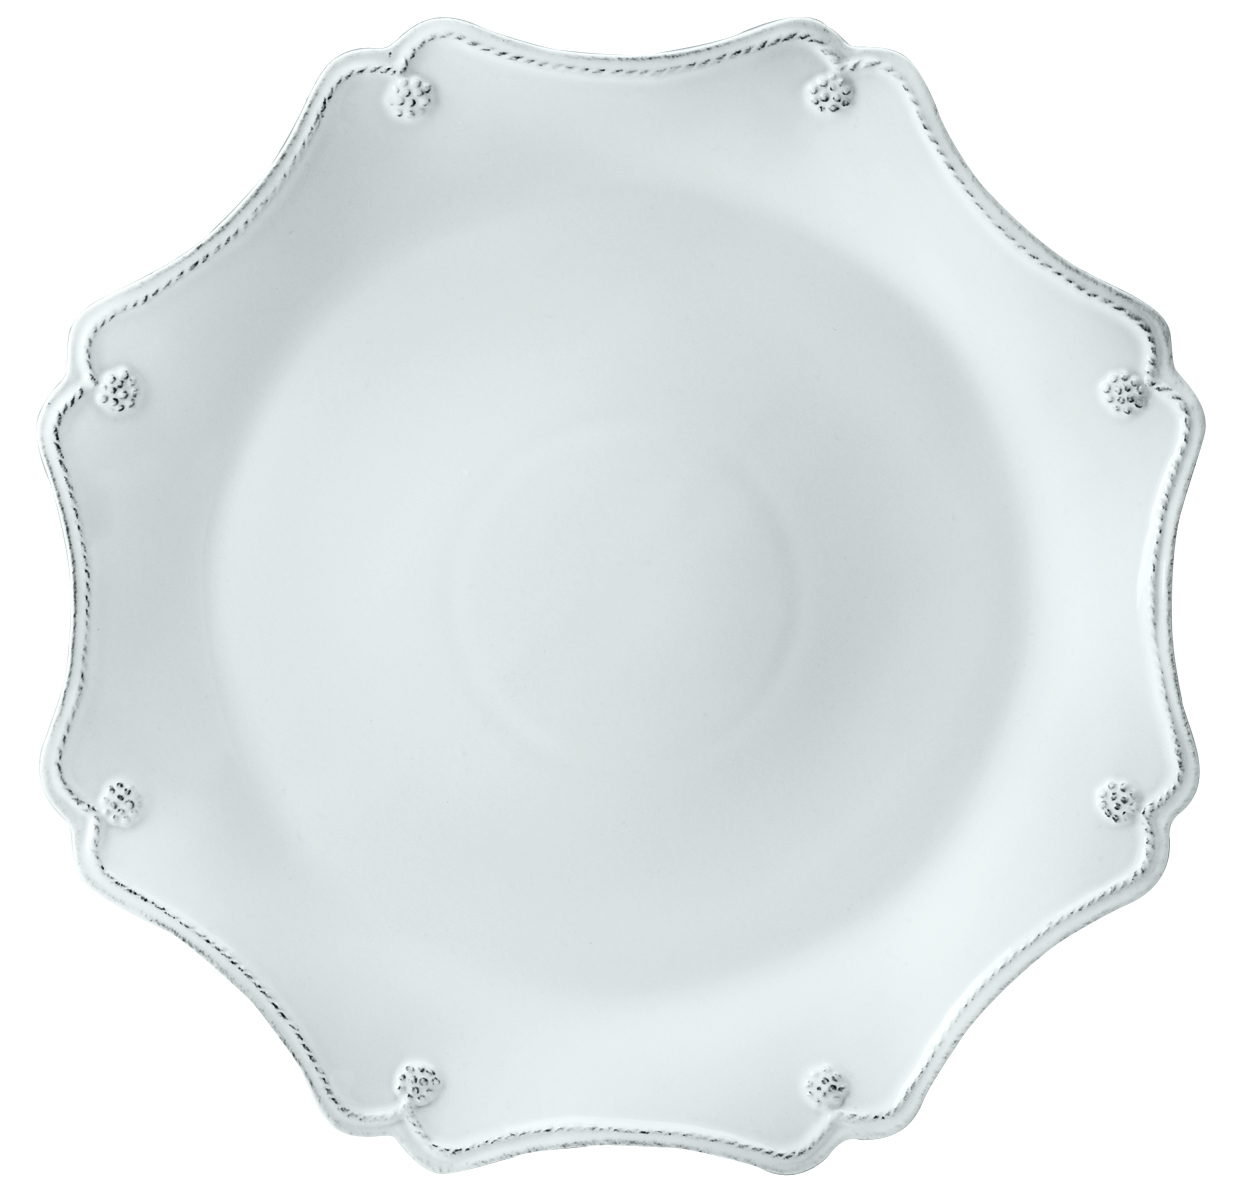 sc 1 st  Distinctive Decor & Juliska Dinnerware Berry and Thread Scallop Charger Plate - Whitewash